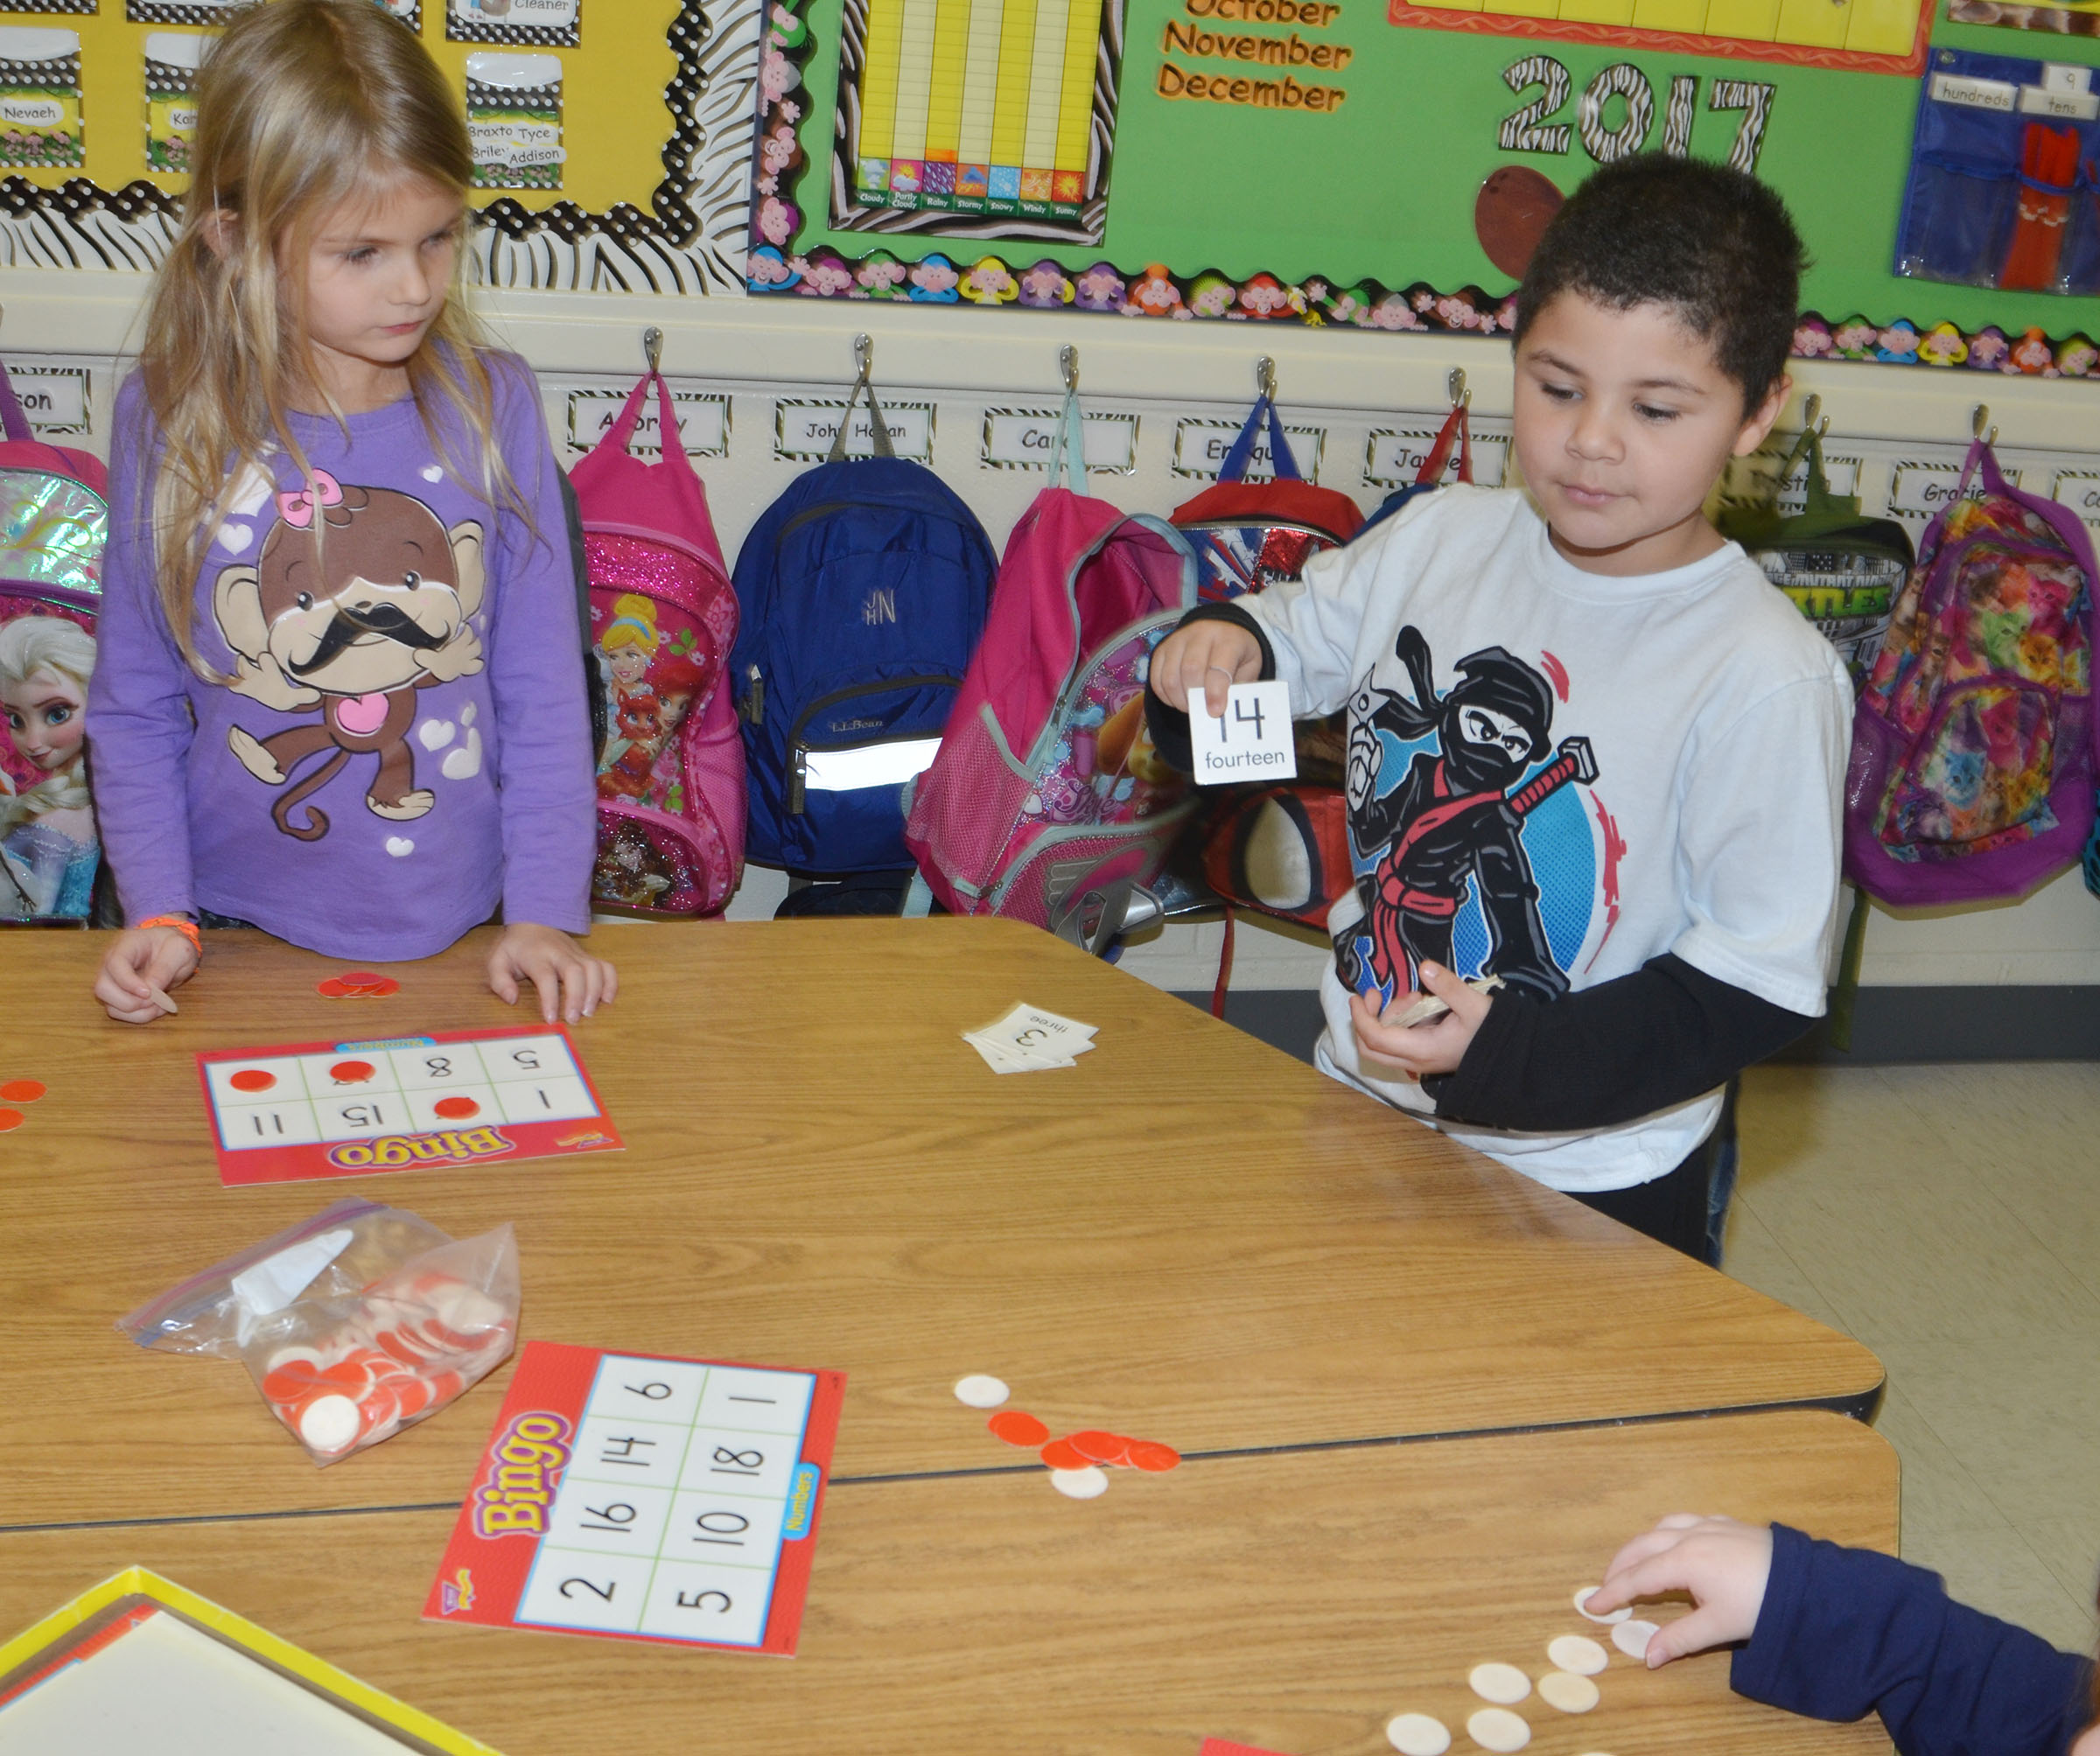 CES kindergarteners Gracie Gebler, at left, listens as classmate NyJah Vaught calls a number while her group plays math Bingo.